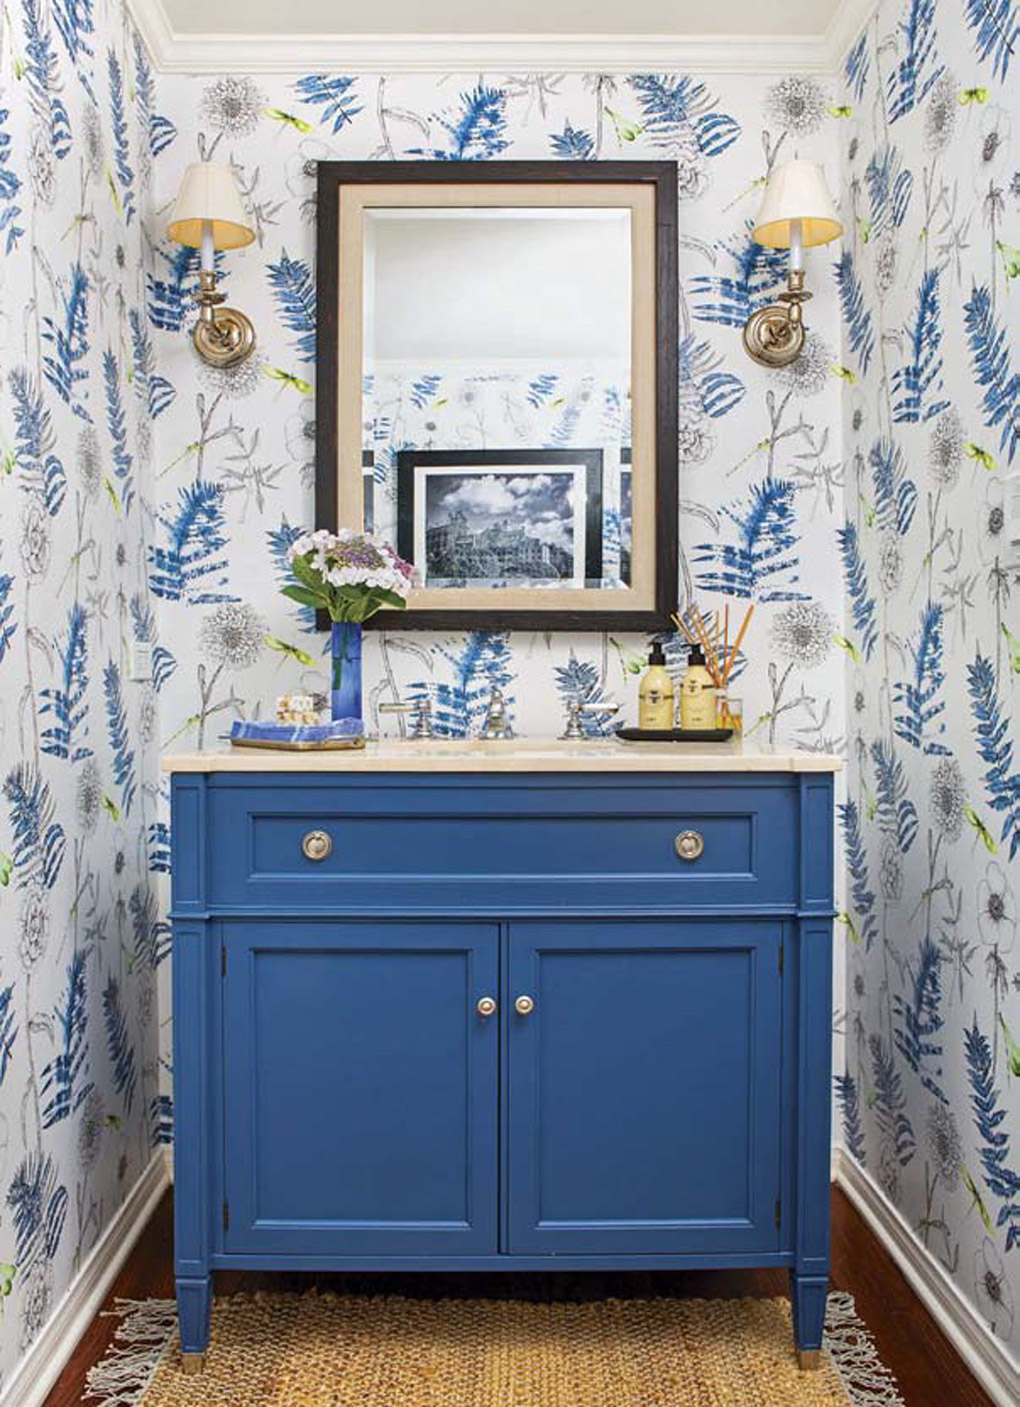 Powder bath with a bold blue vanity, surrounded by gold accents and floral wallpaper.